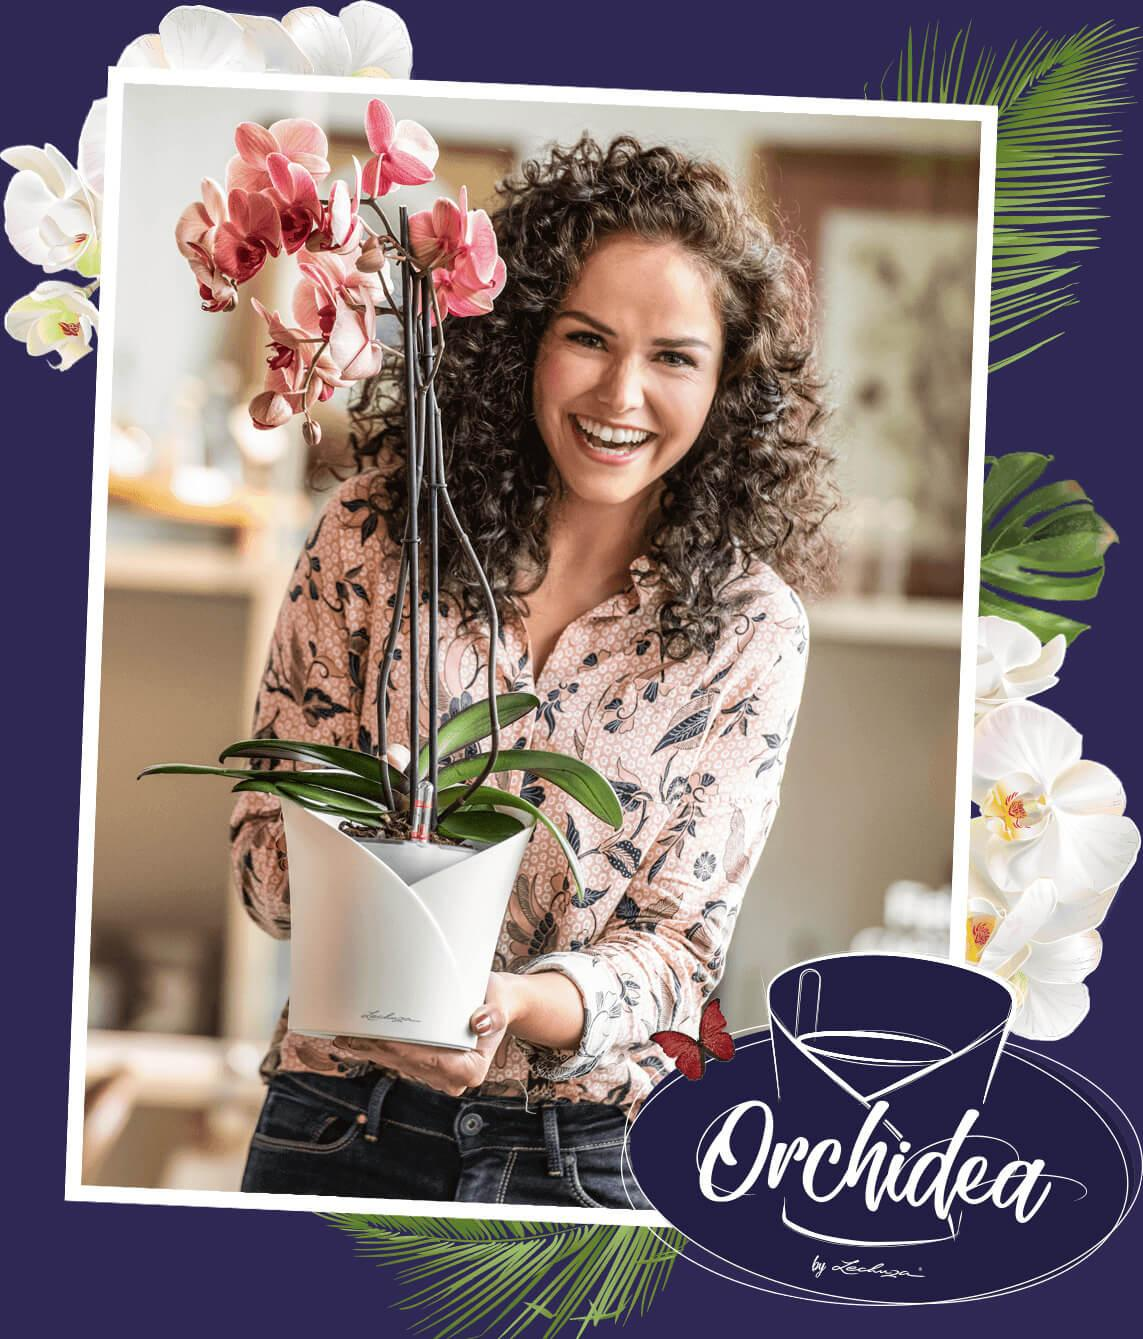 ORCHIDEA Il vaso per orchidee all-in-one